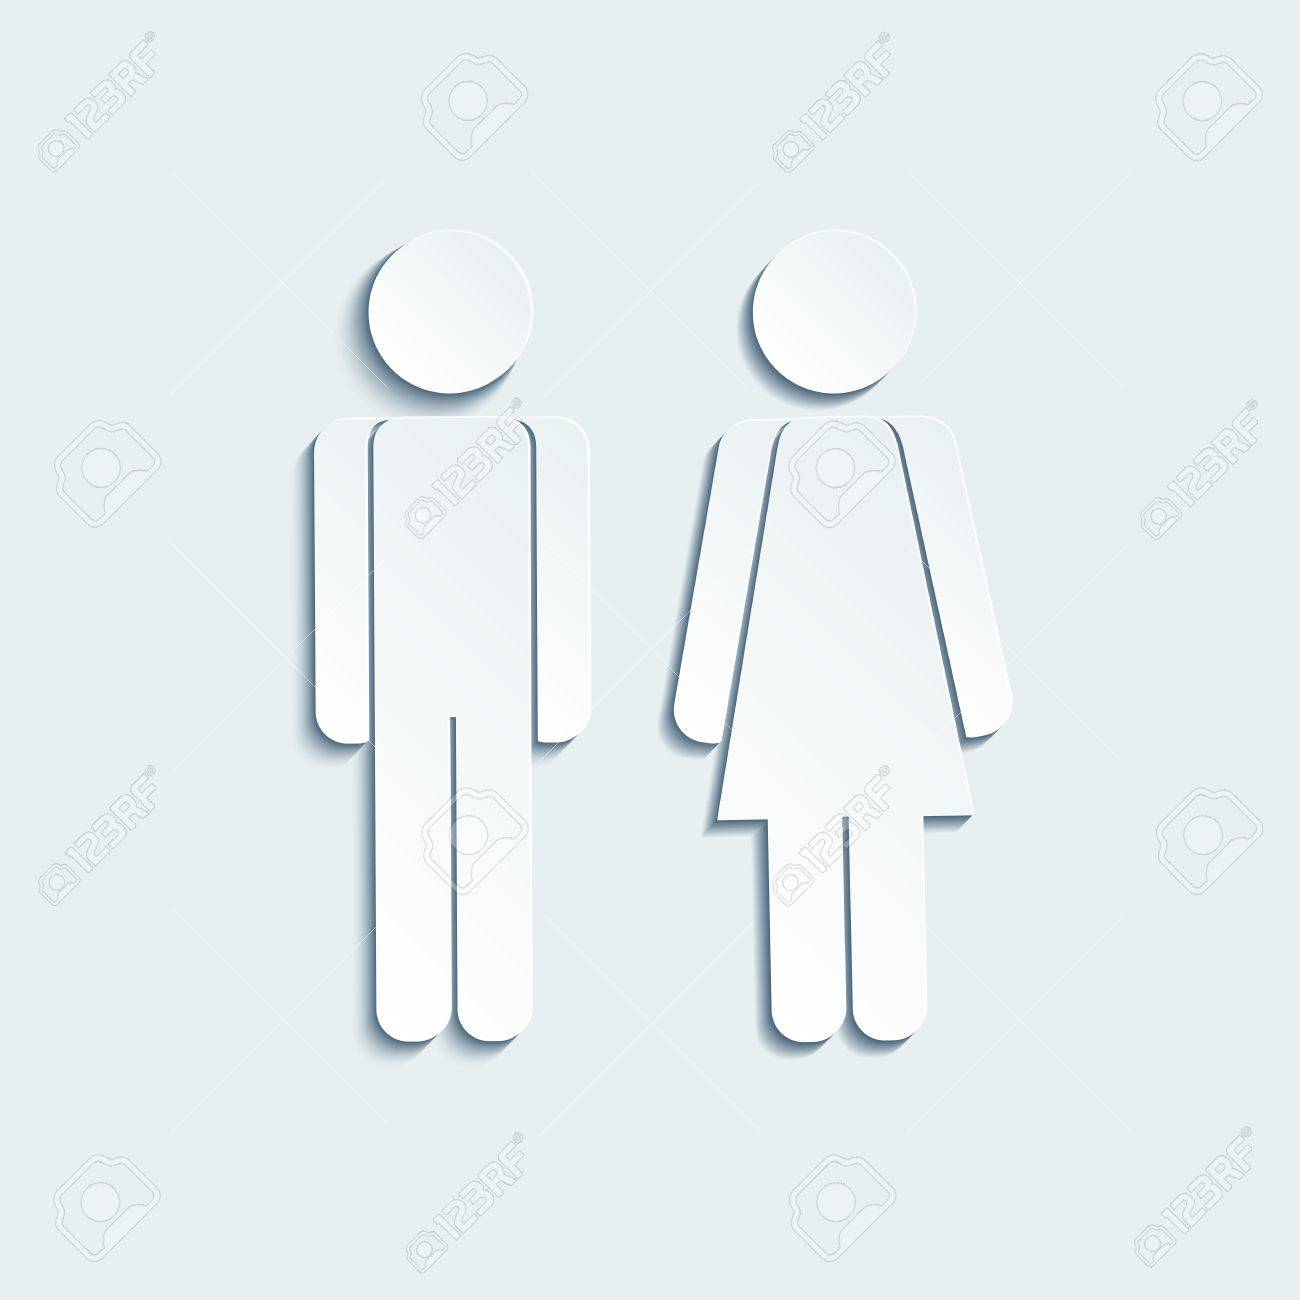 men s bathroom sign vector. Vector - Man And Woman Icons For Toilet Or Restroom Sign. Sign Of Gender On The Door In Men\u0027s Women\u0027s Restroom. Men S Bathroom